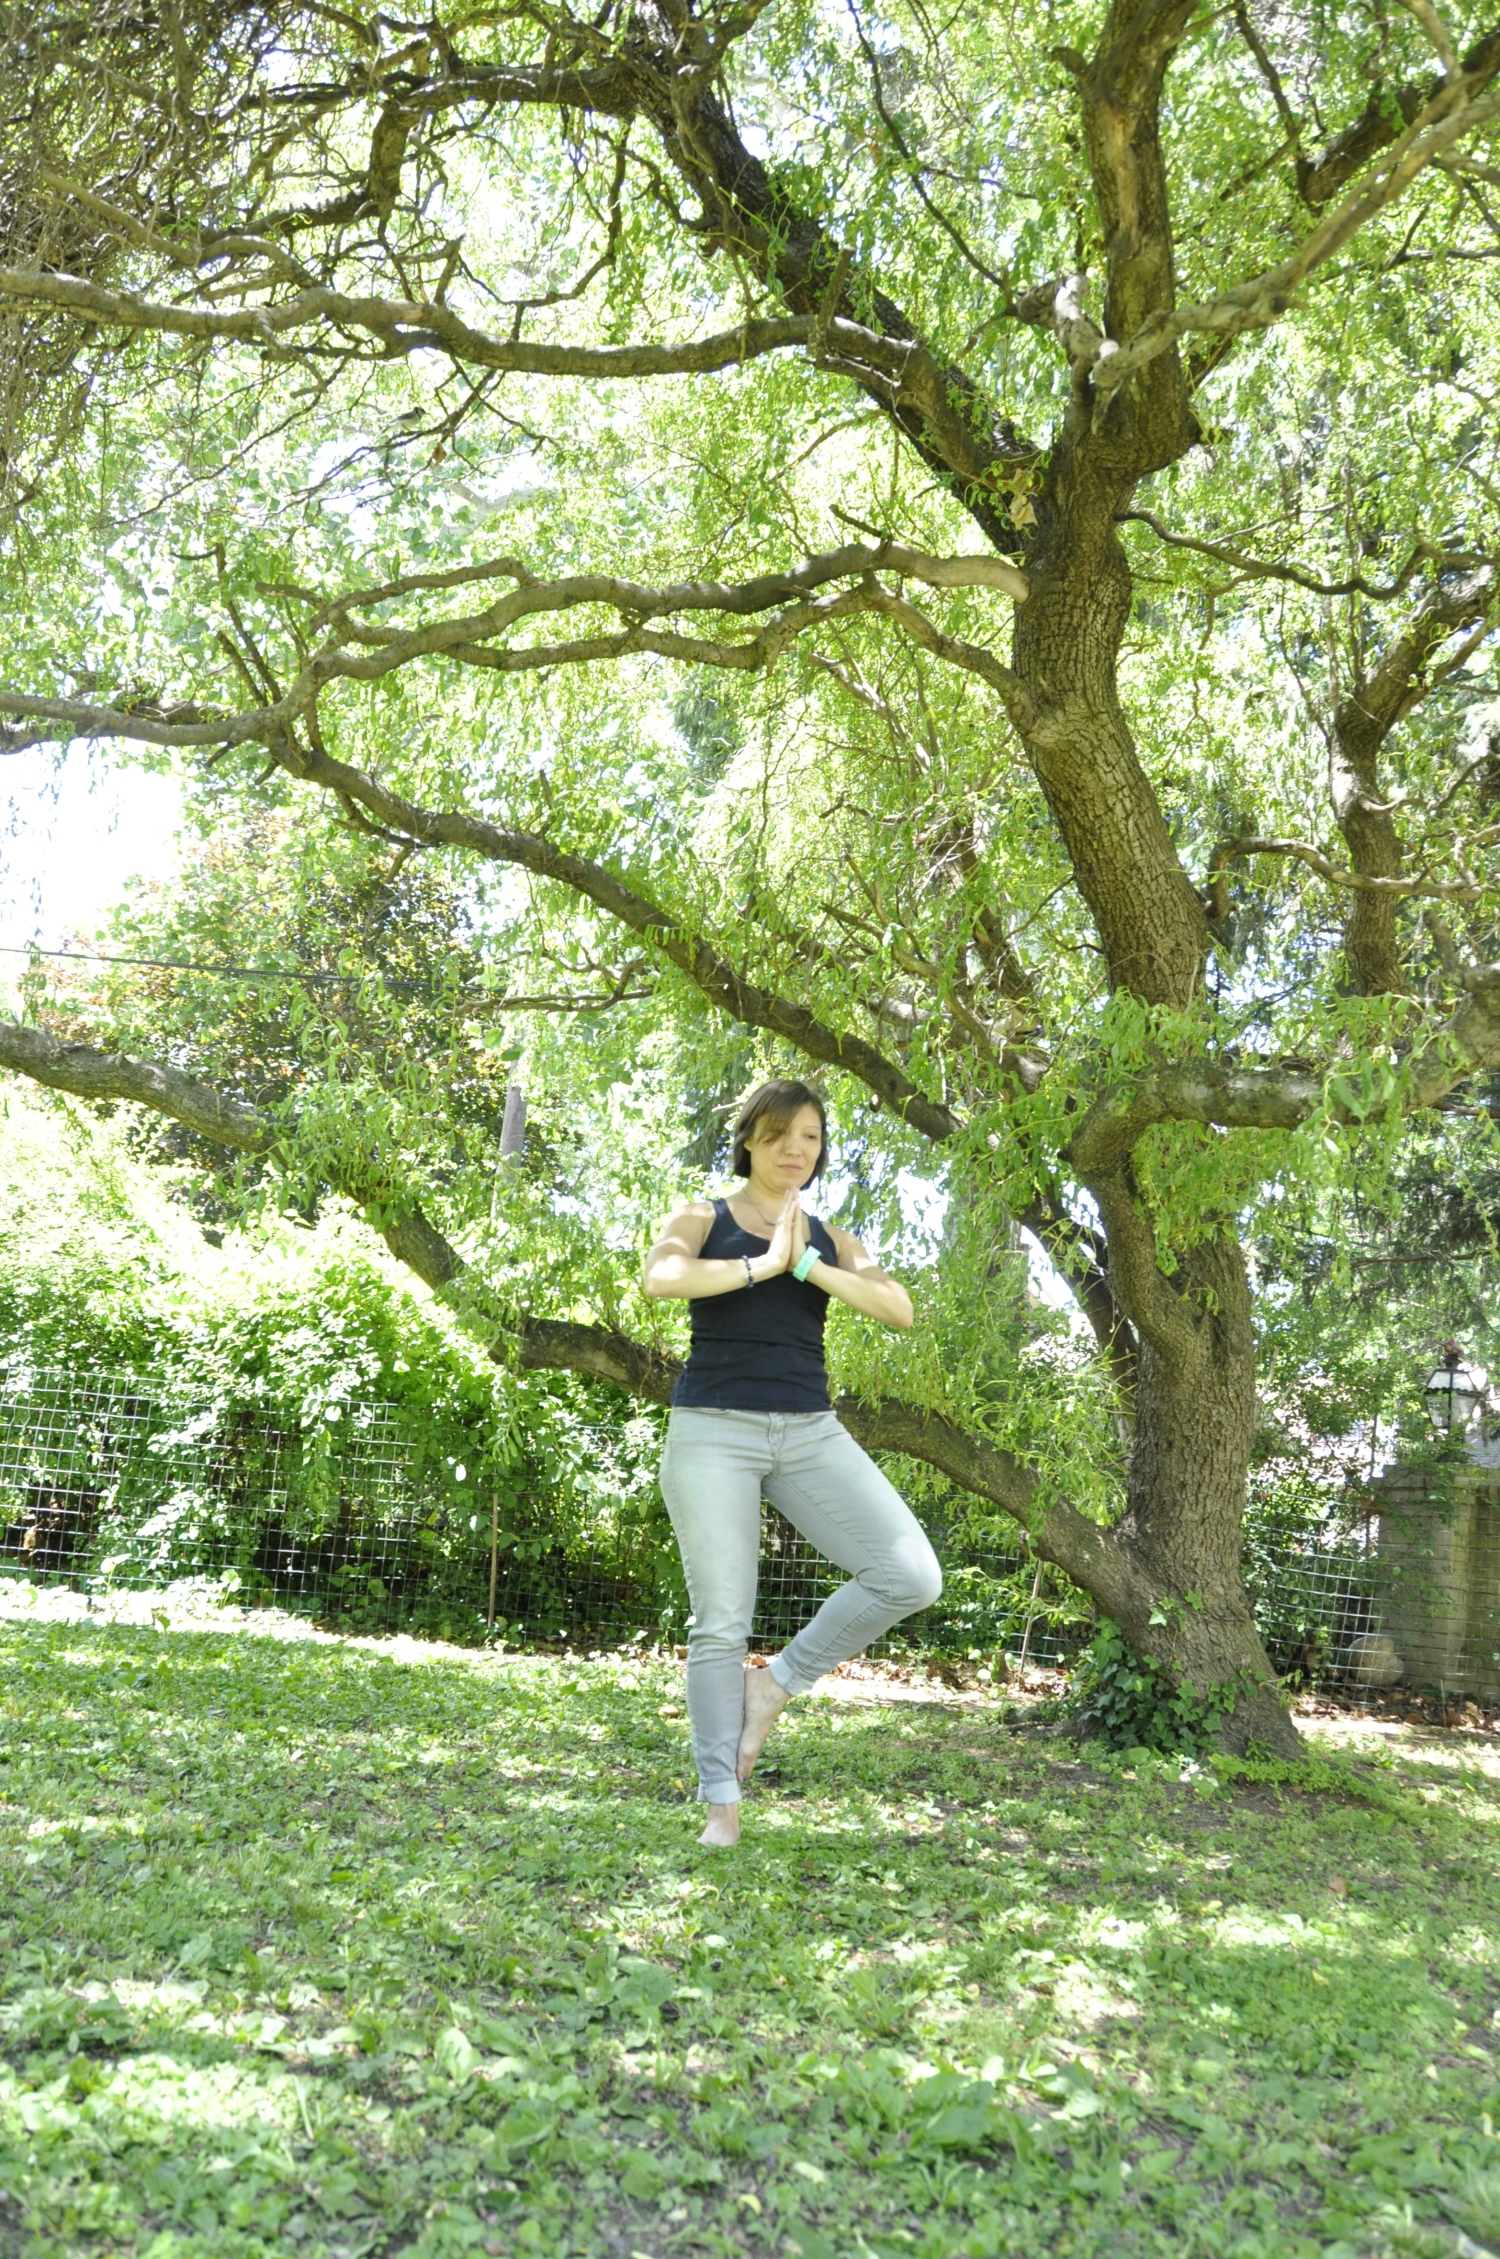 Sometimes my left knee hurts in tree pose (Vrksasana) because I don't have full flexion there. So I frequently now opt to keep my leg lower instead of forcing myself into it.   Photo credit:    Aly Gaul   .